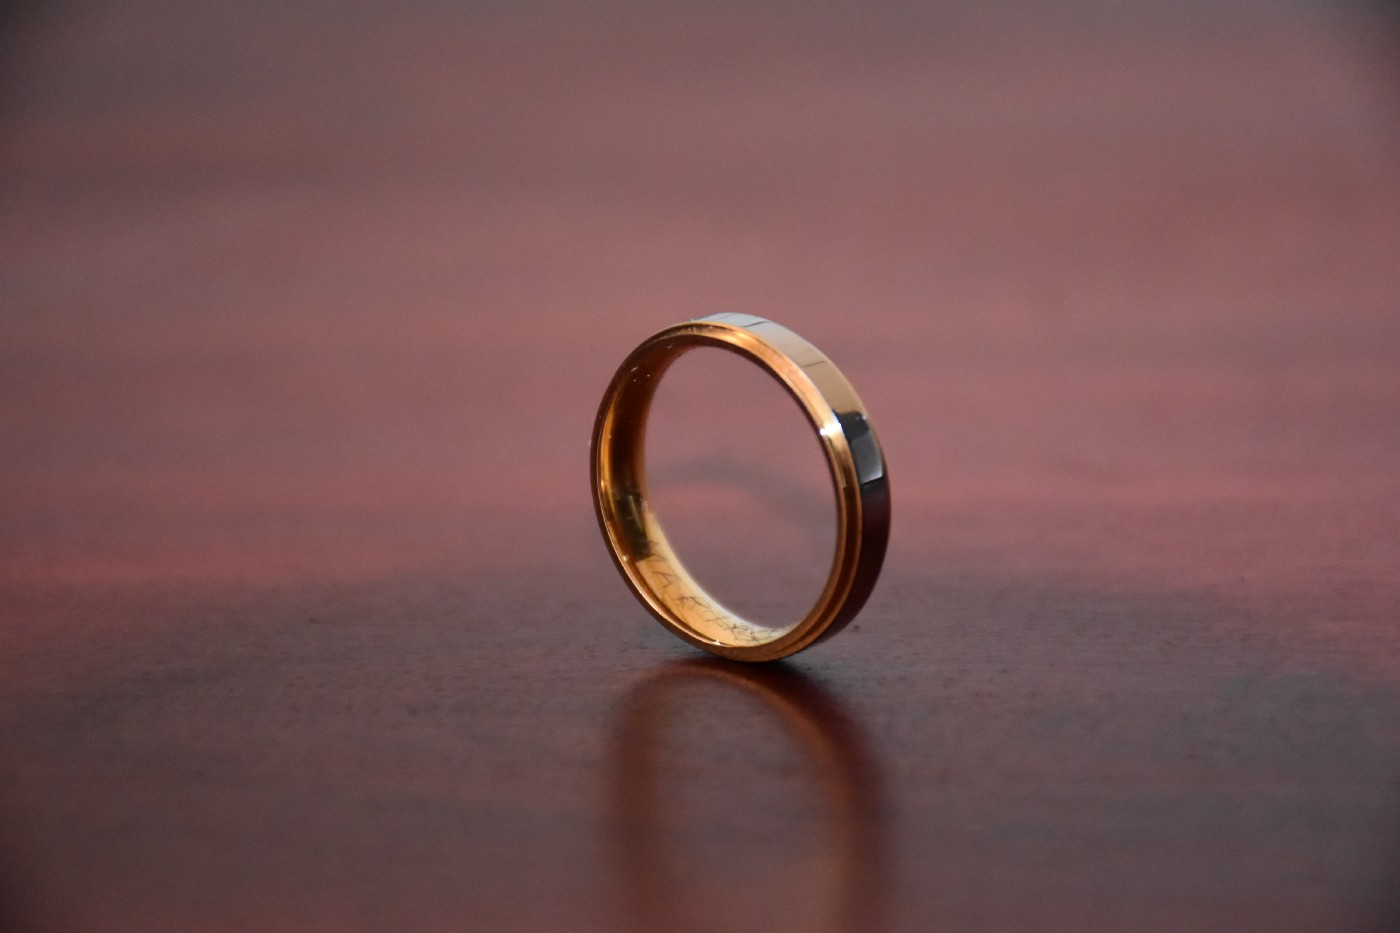 A plain gold ring on a wooden surface.